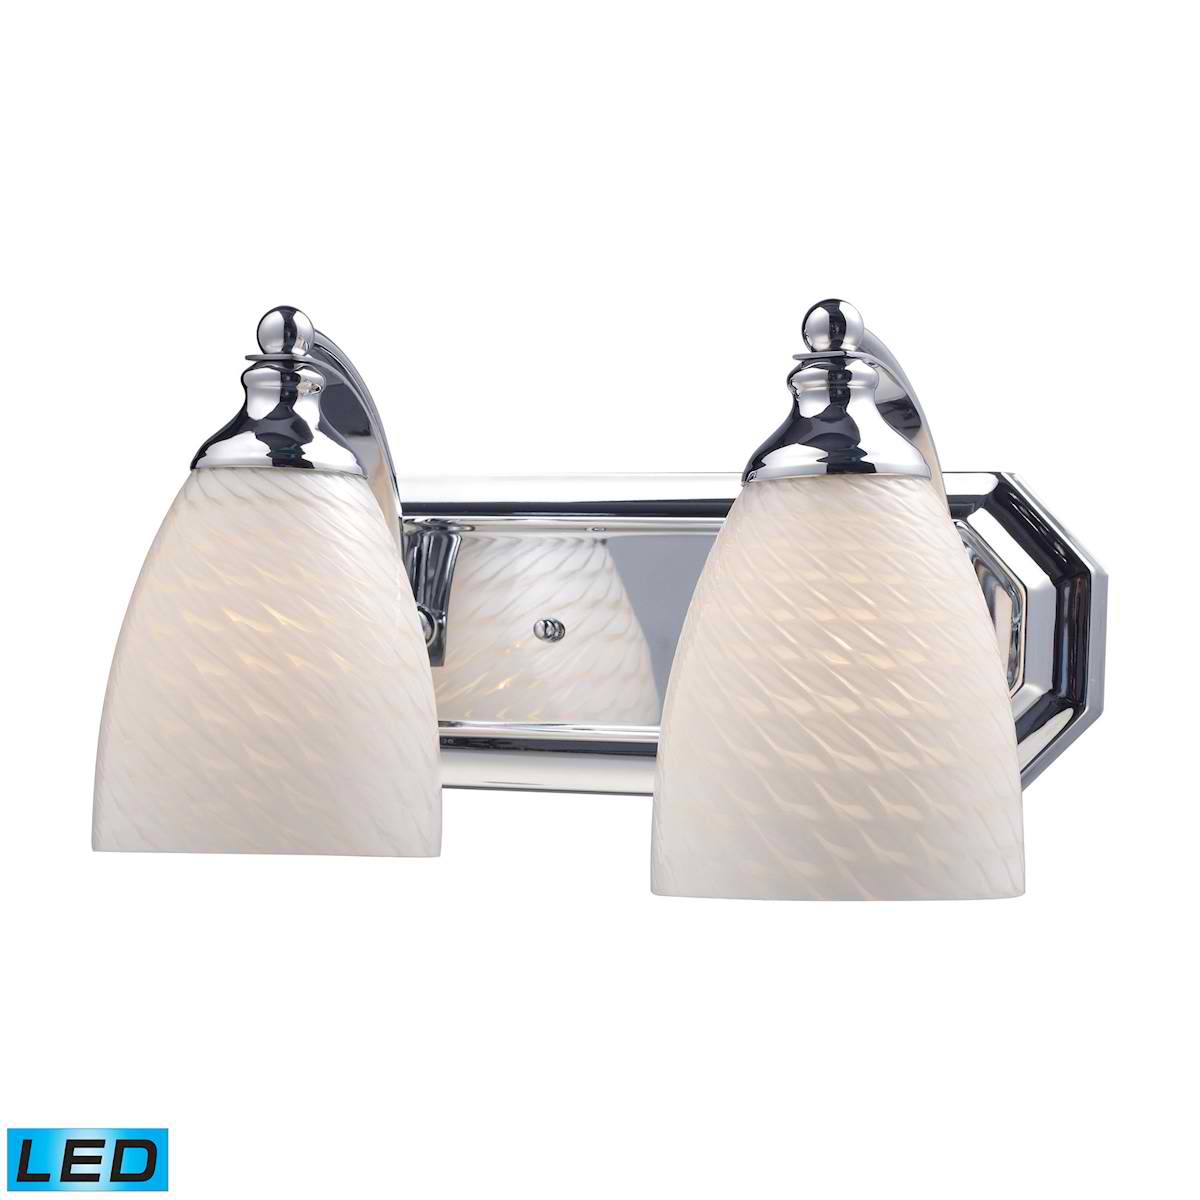 2 Light Vanity in Polished Chrome and White Swirl Glass - LED, 800 Lumens (1600 Lumens Total) with Full Scale